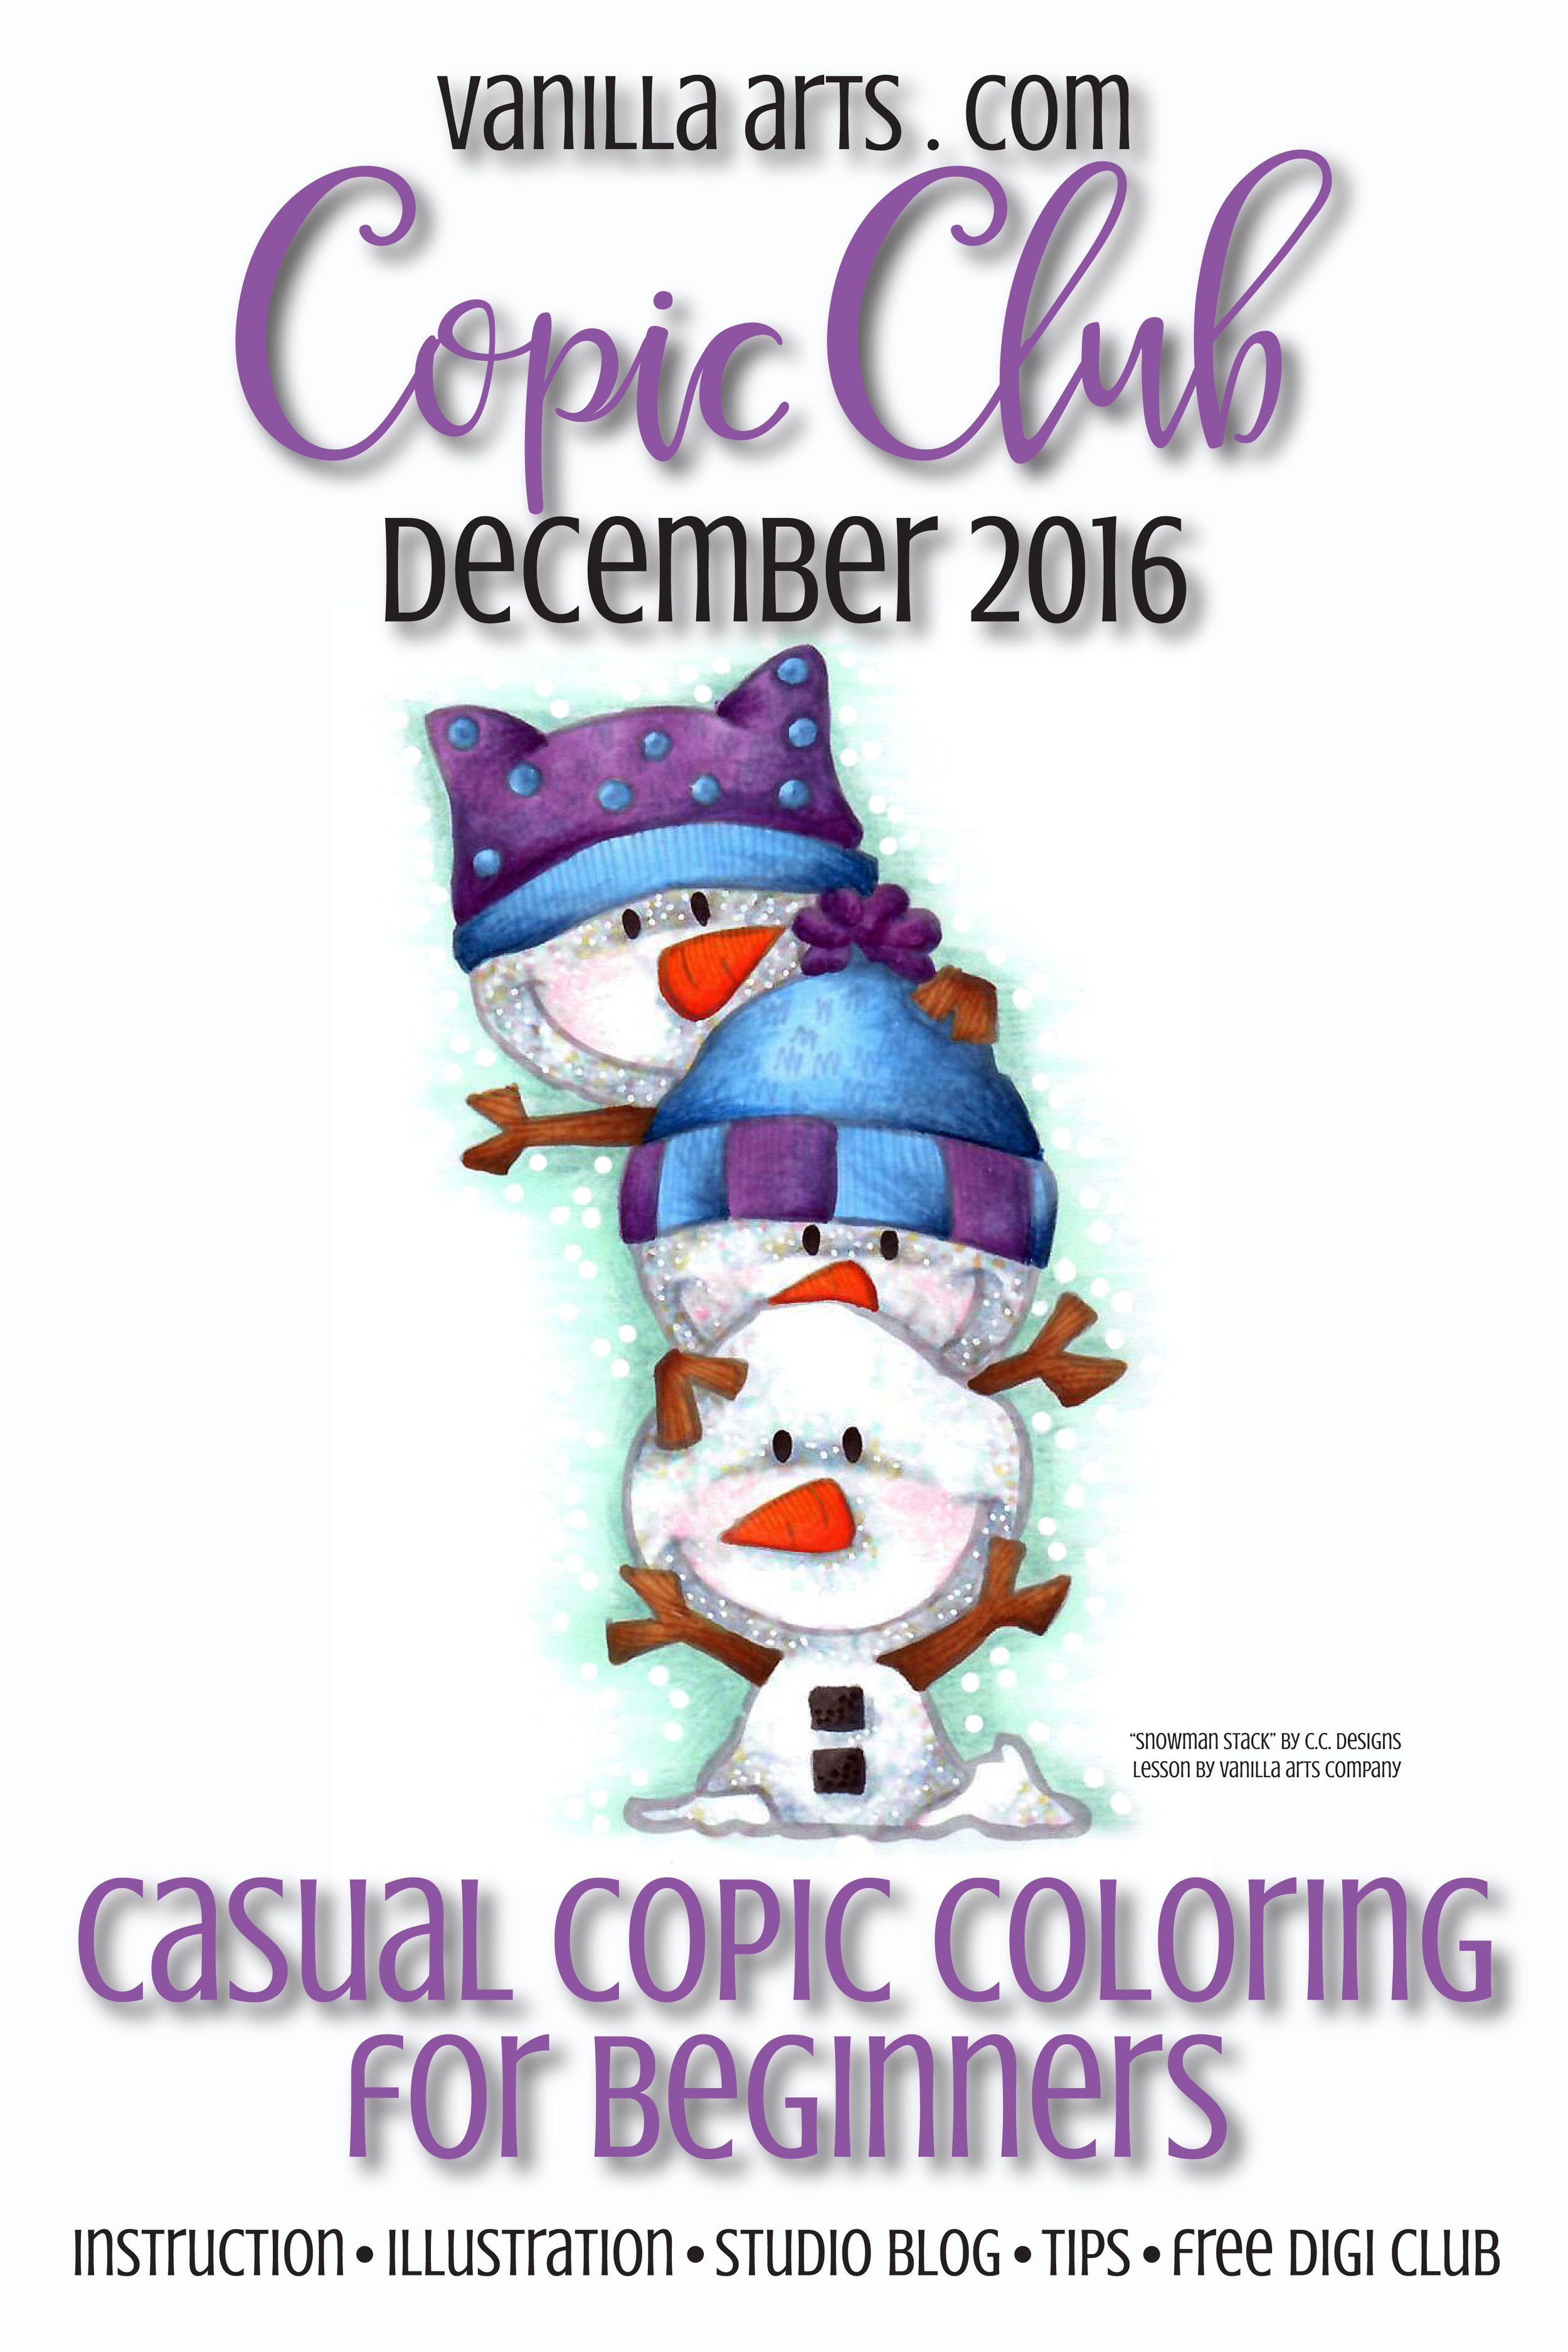 Dec 2016 Copic Club, classes for beginner level Copic Marker. Lesson on coloring snow. | VanillaArts.com